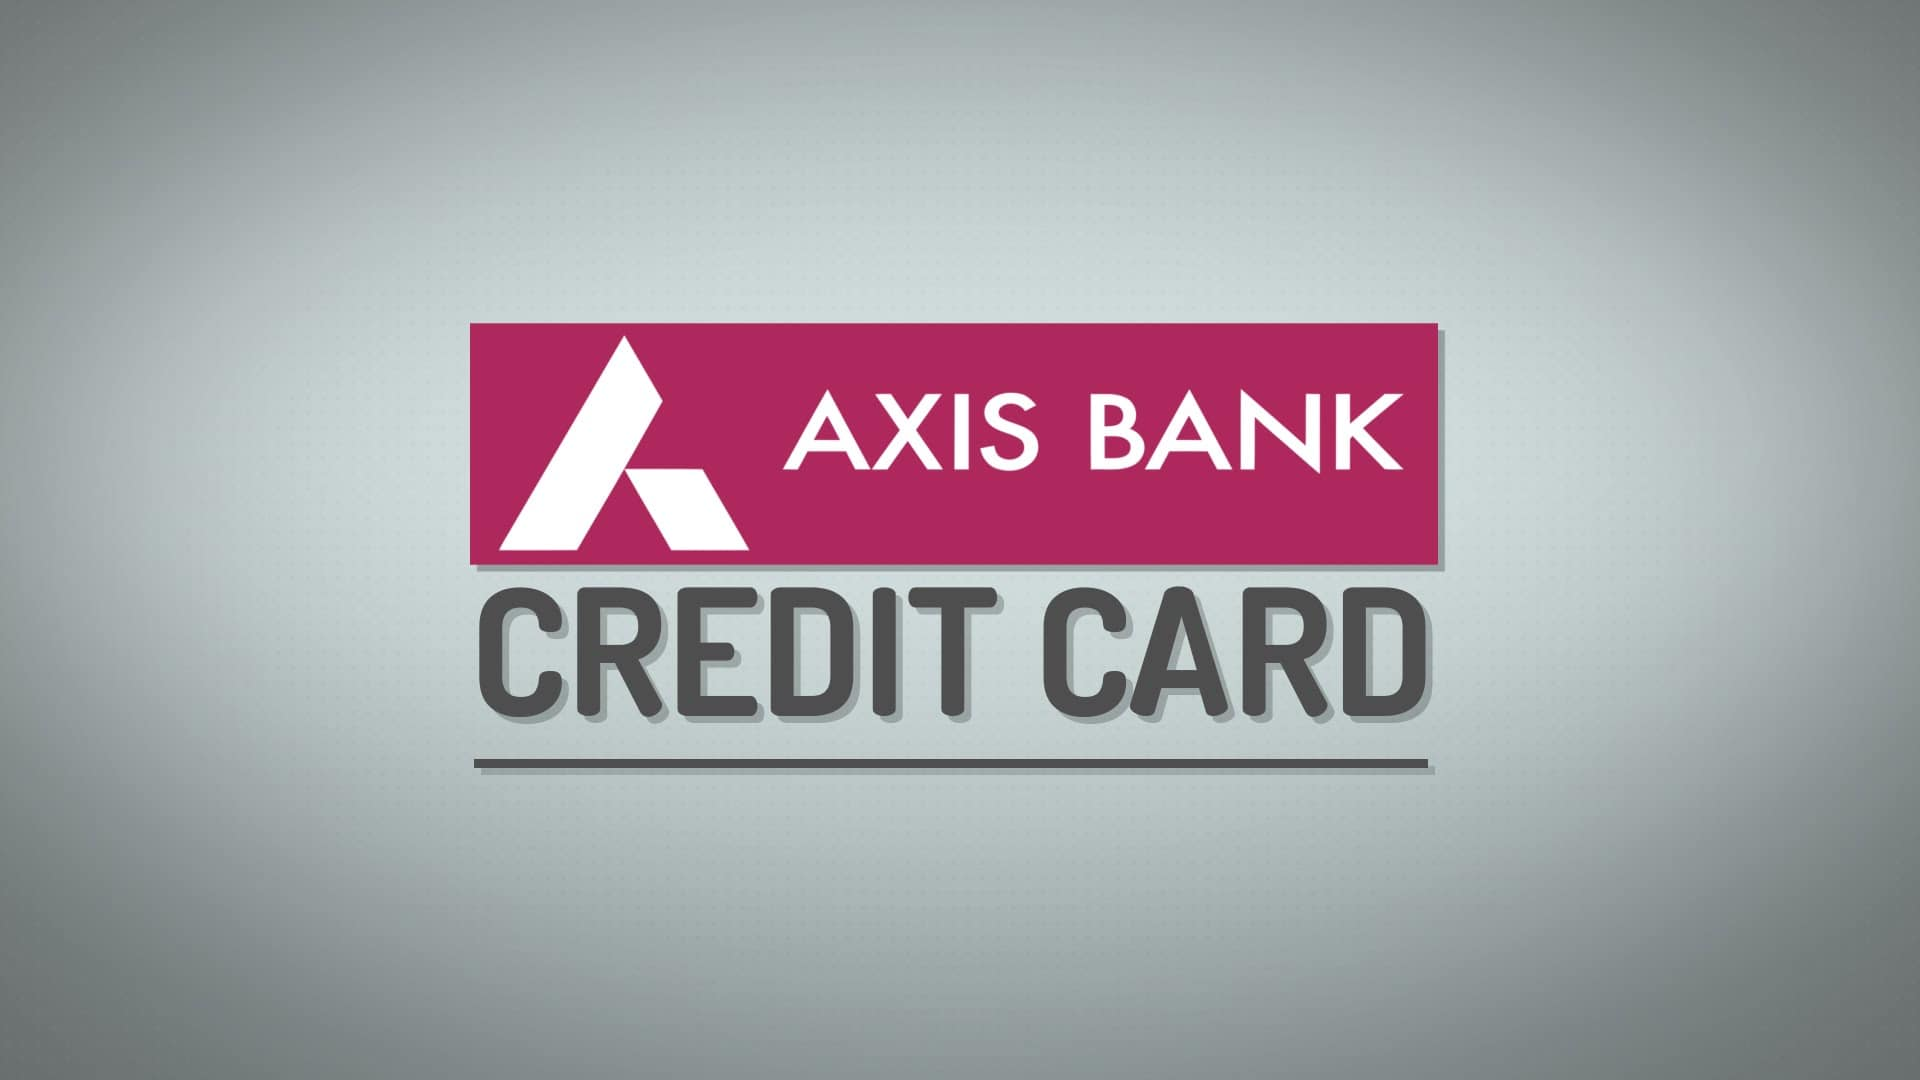 Axis Bank Credit Card